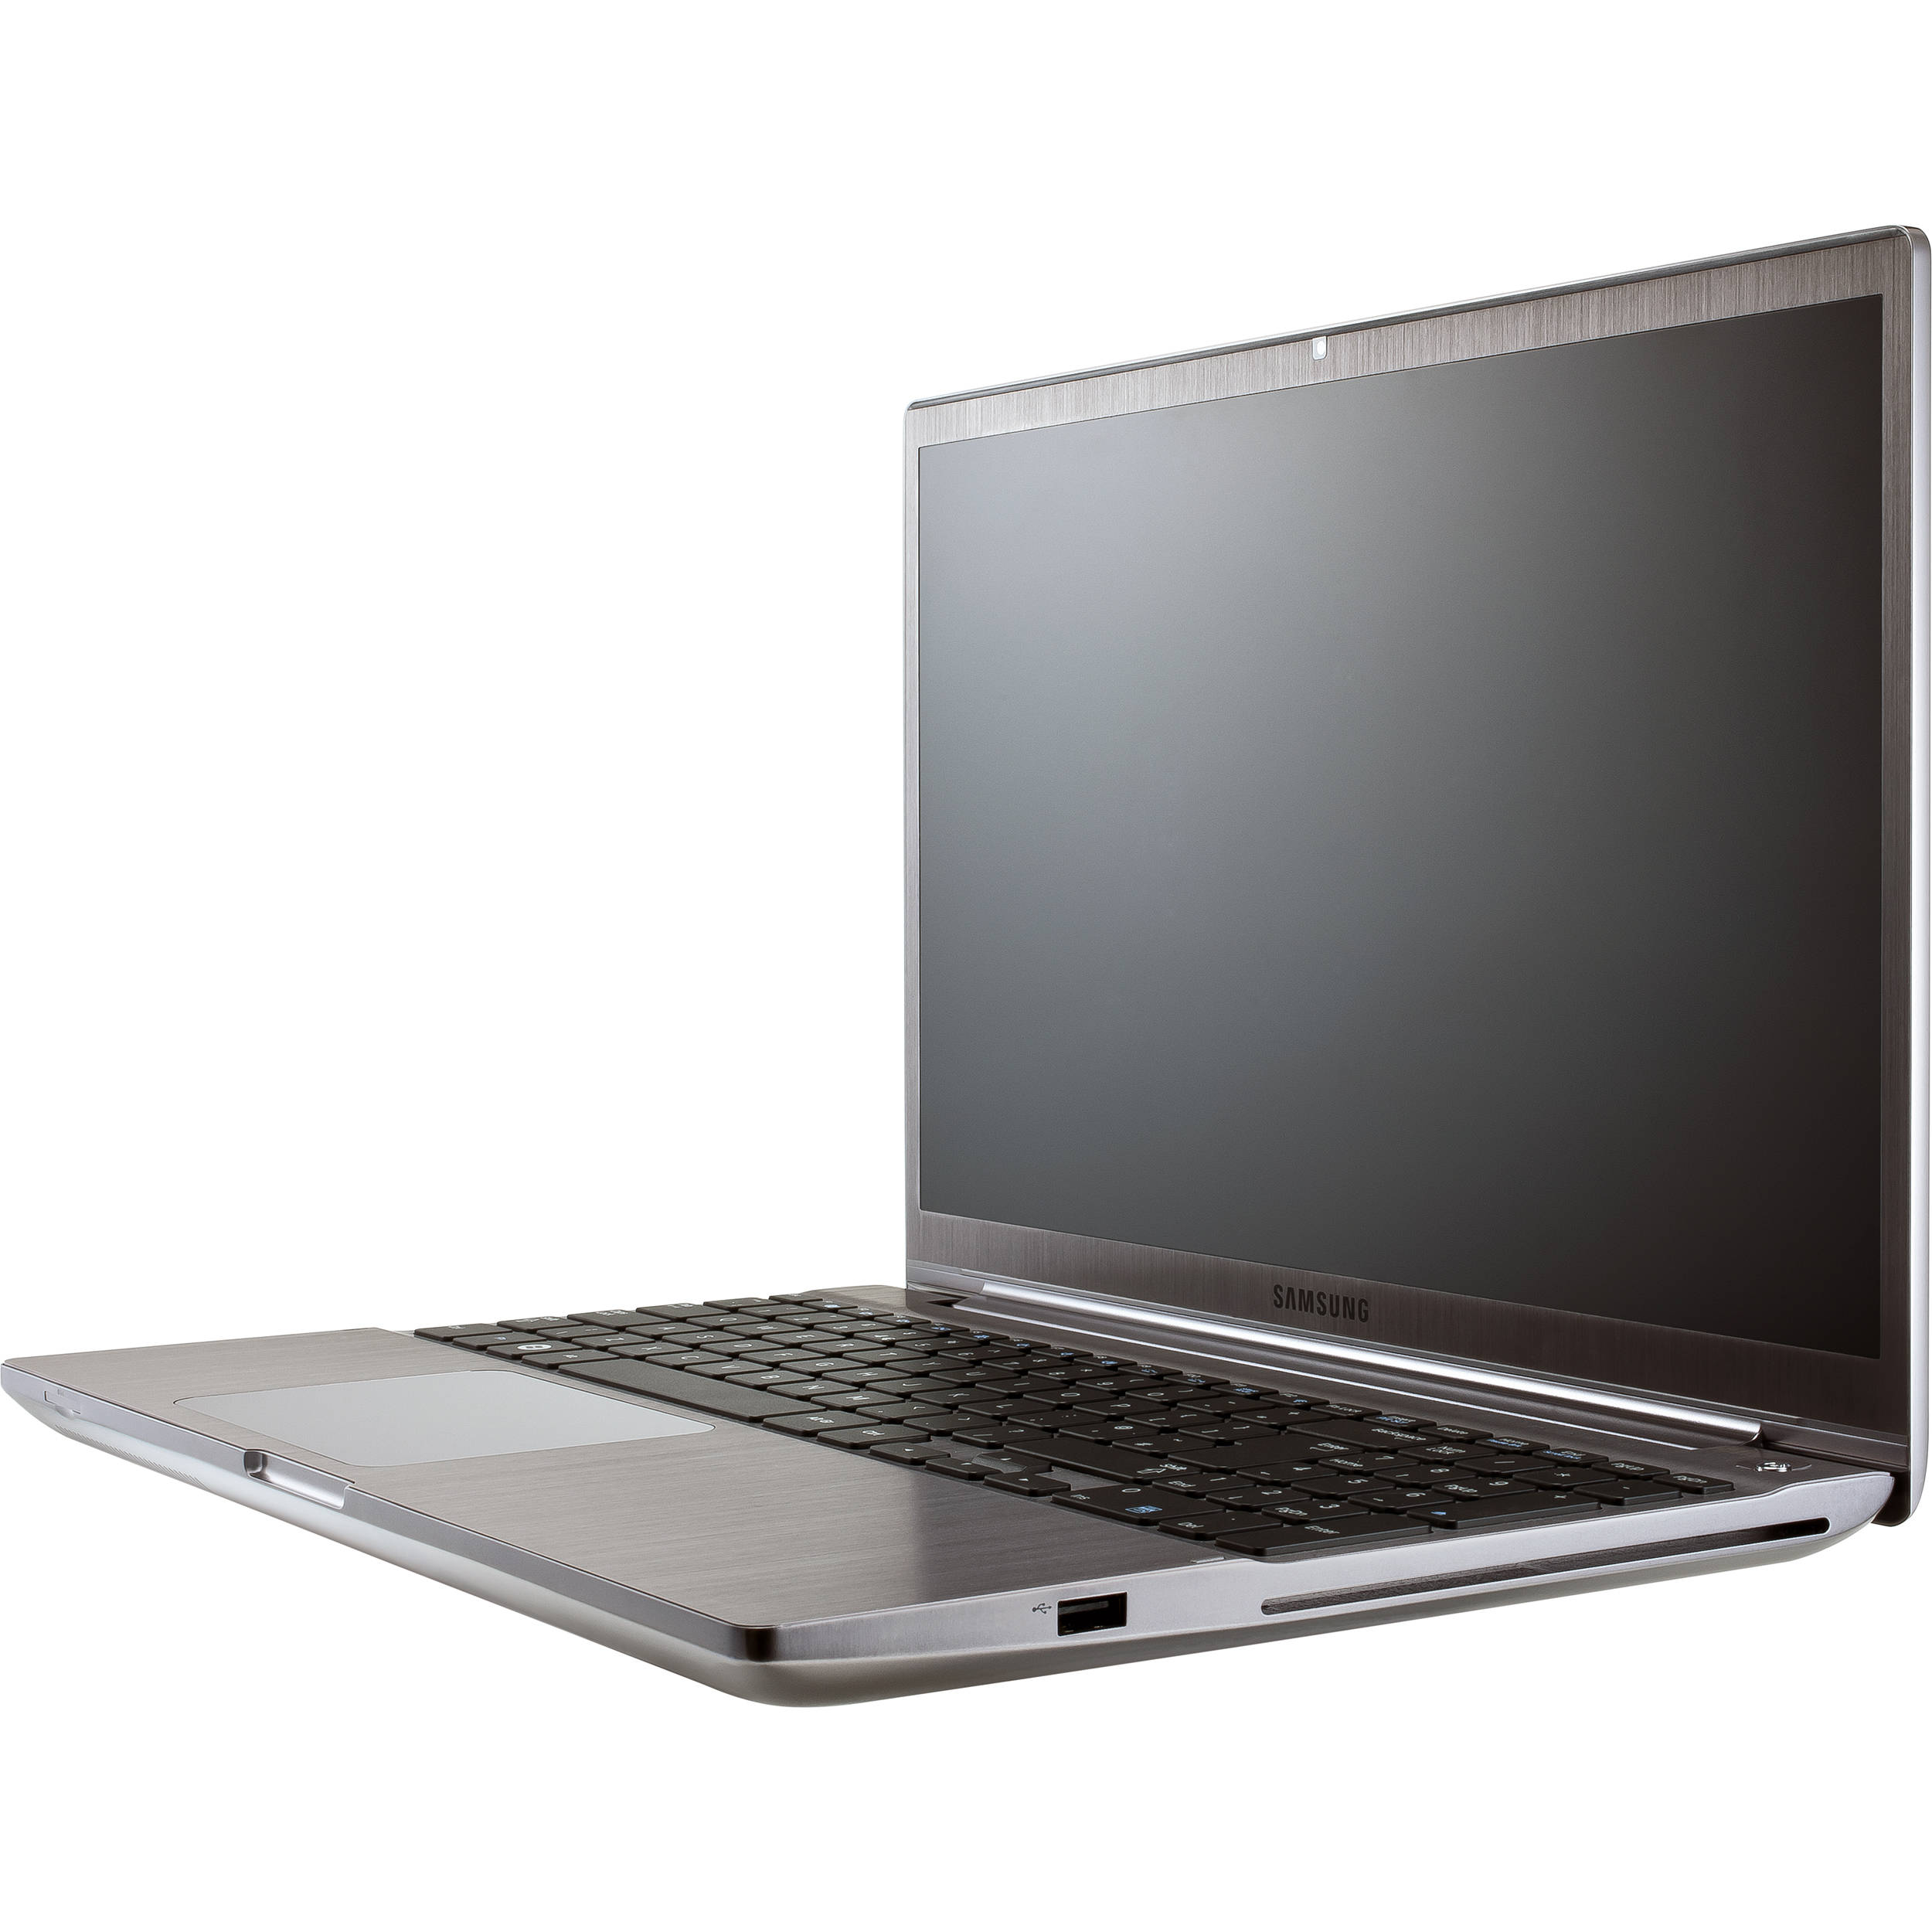 Samsung NP700Z5A-S06US Drivers Download (2019)